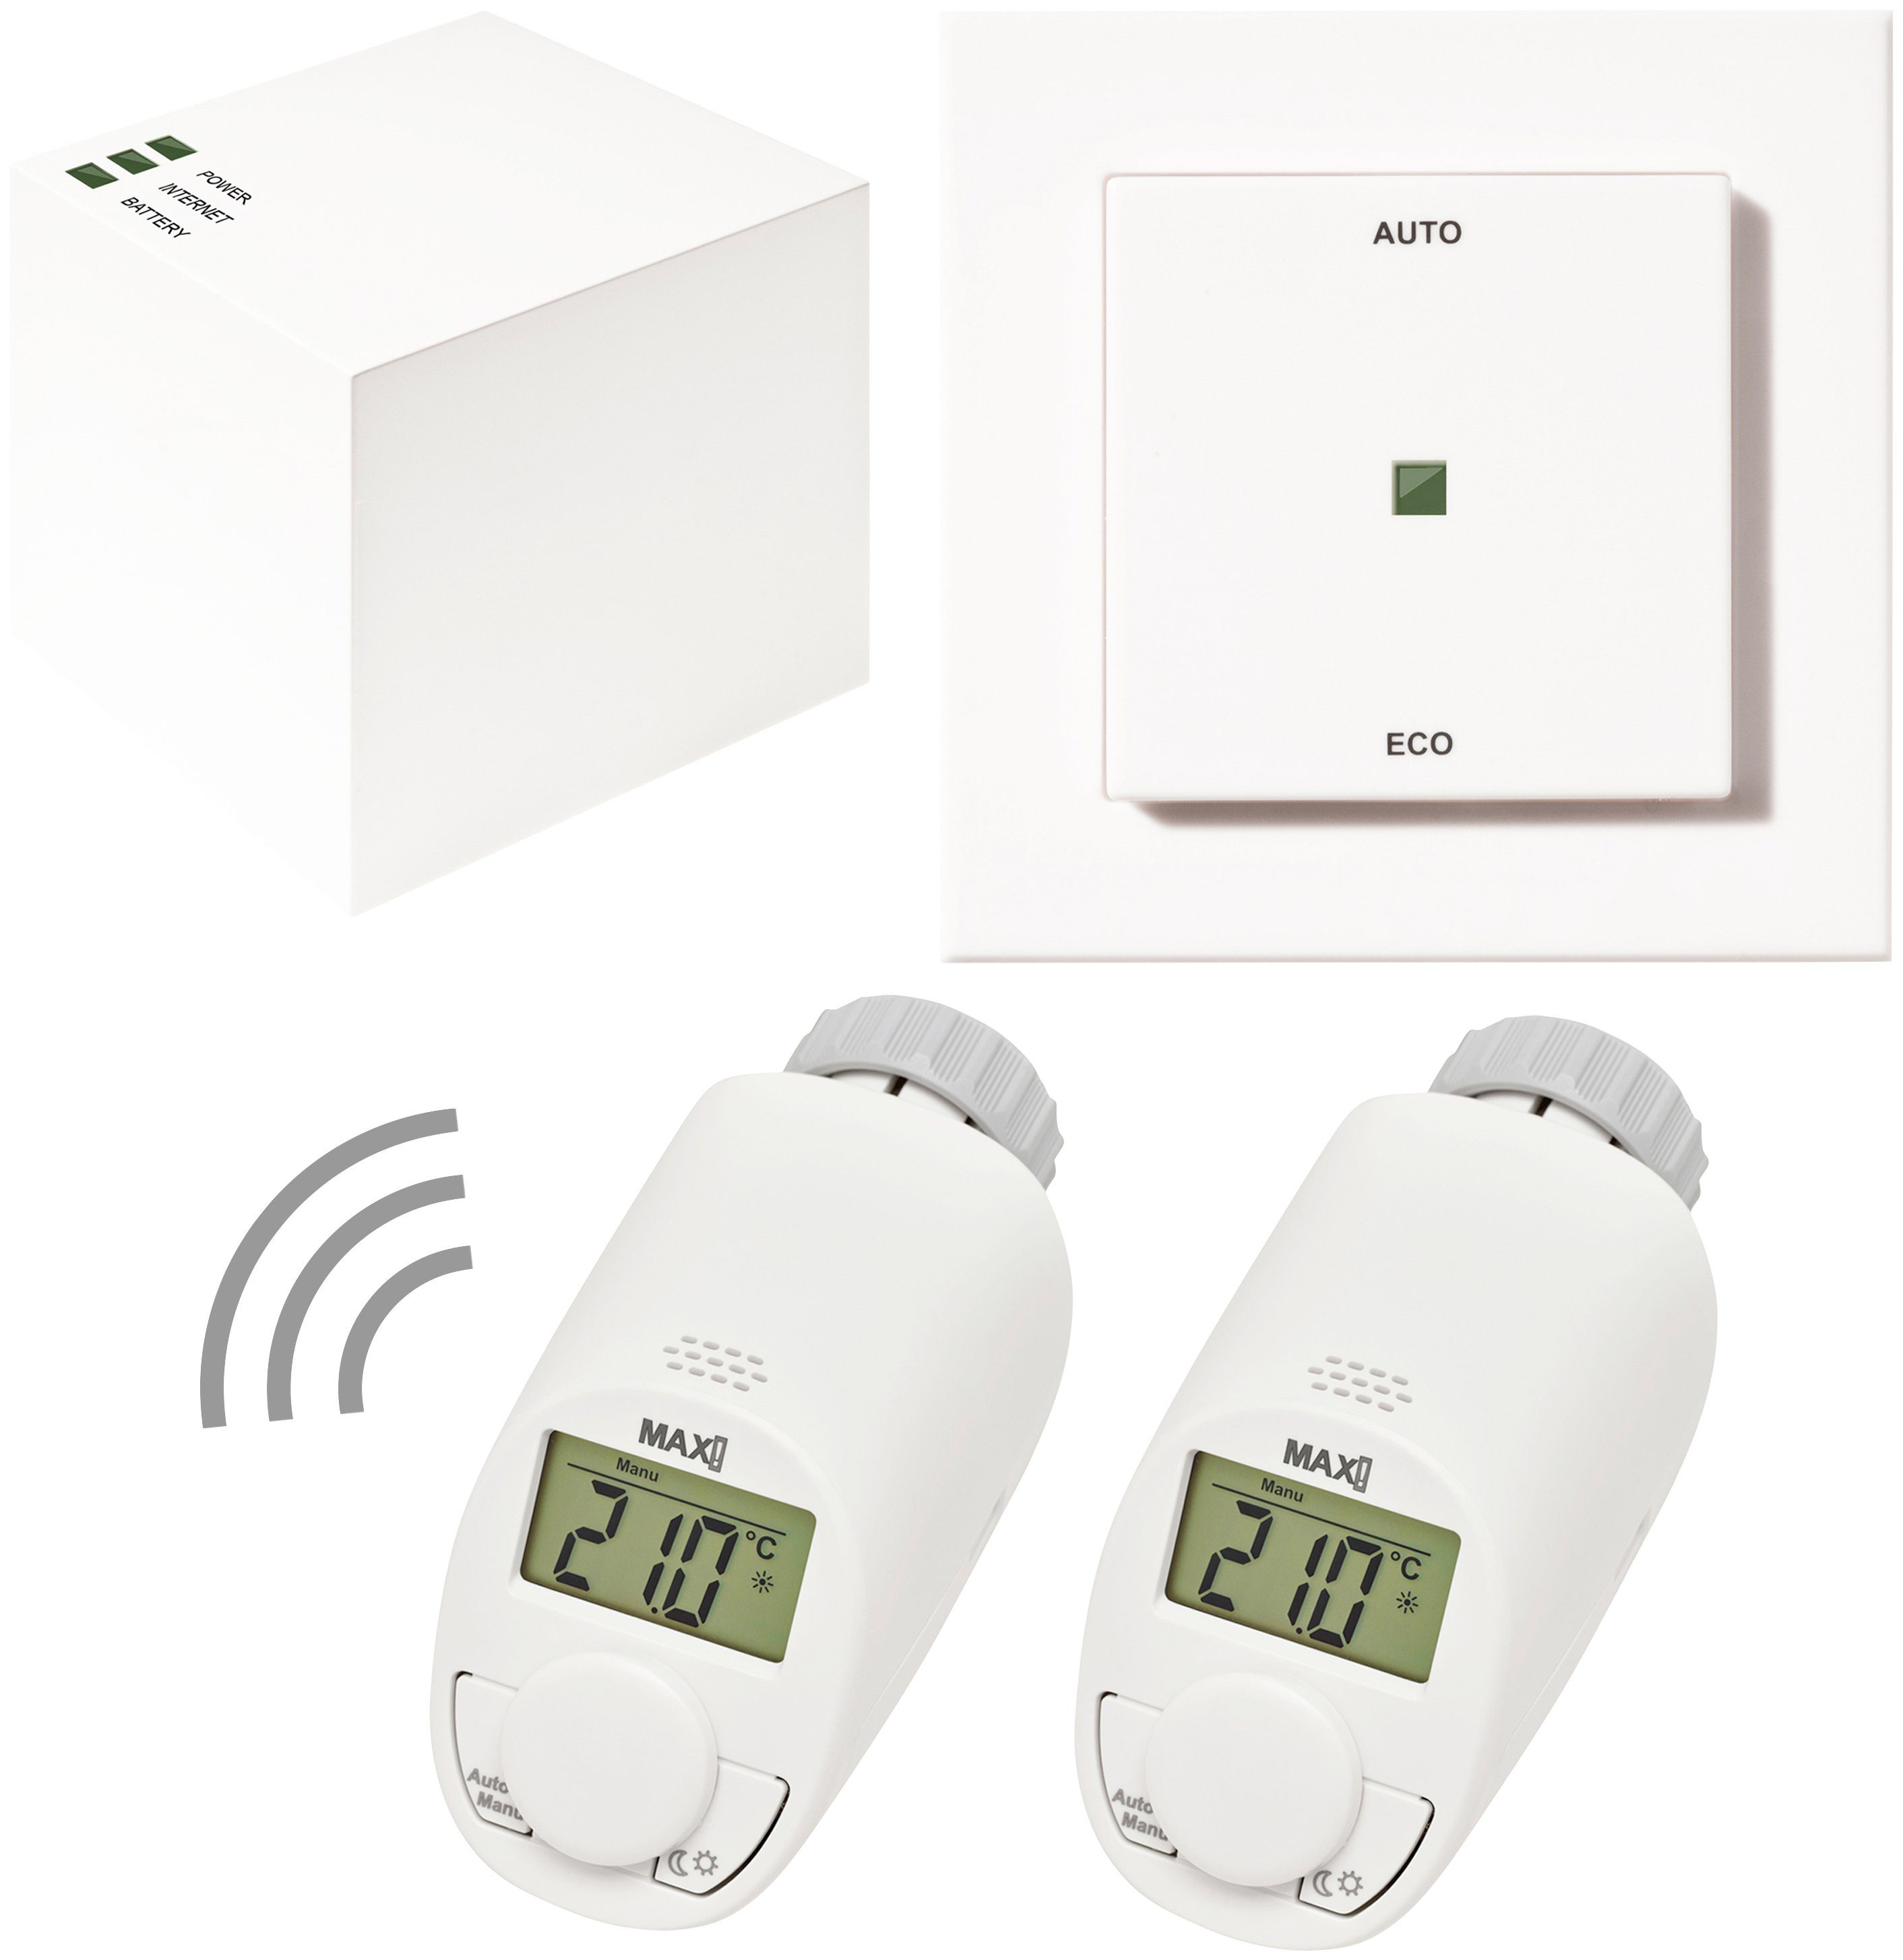 MAX! Smart Home Set »Hauslösung Eco«, 4-tlg., Heizkörperthermostat / Gateway / Eco-Taster